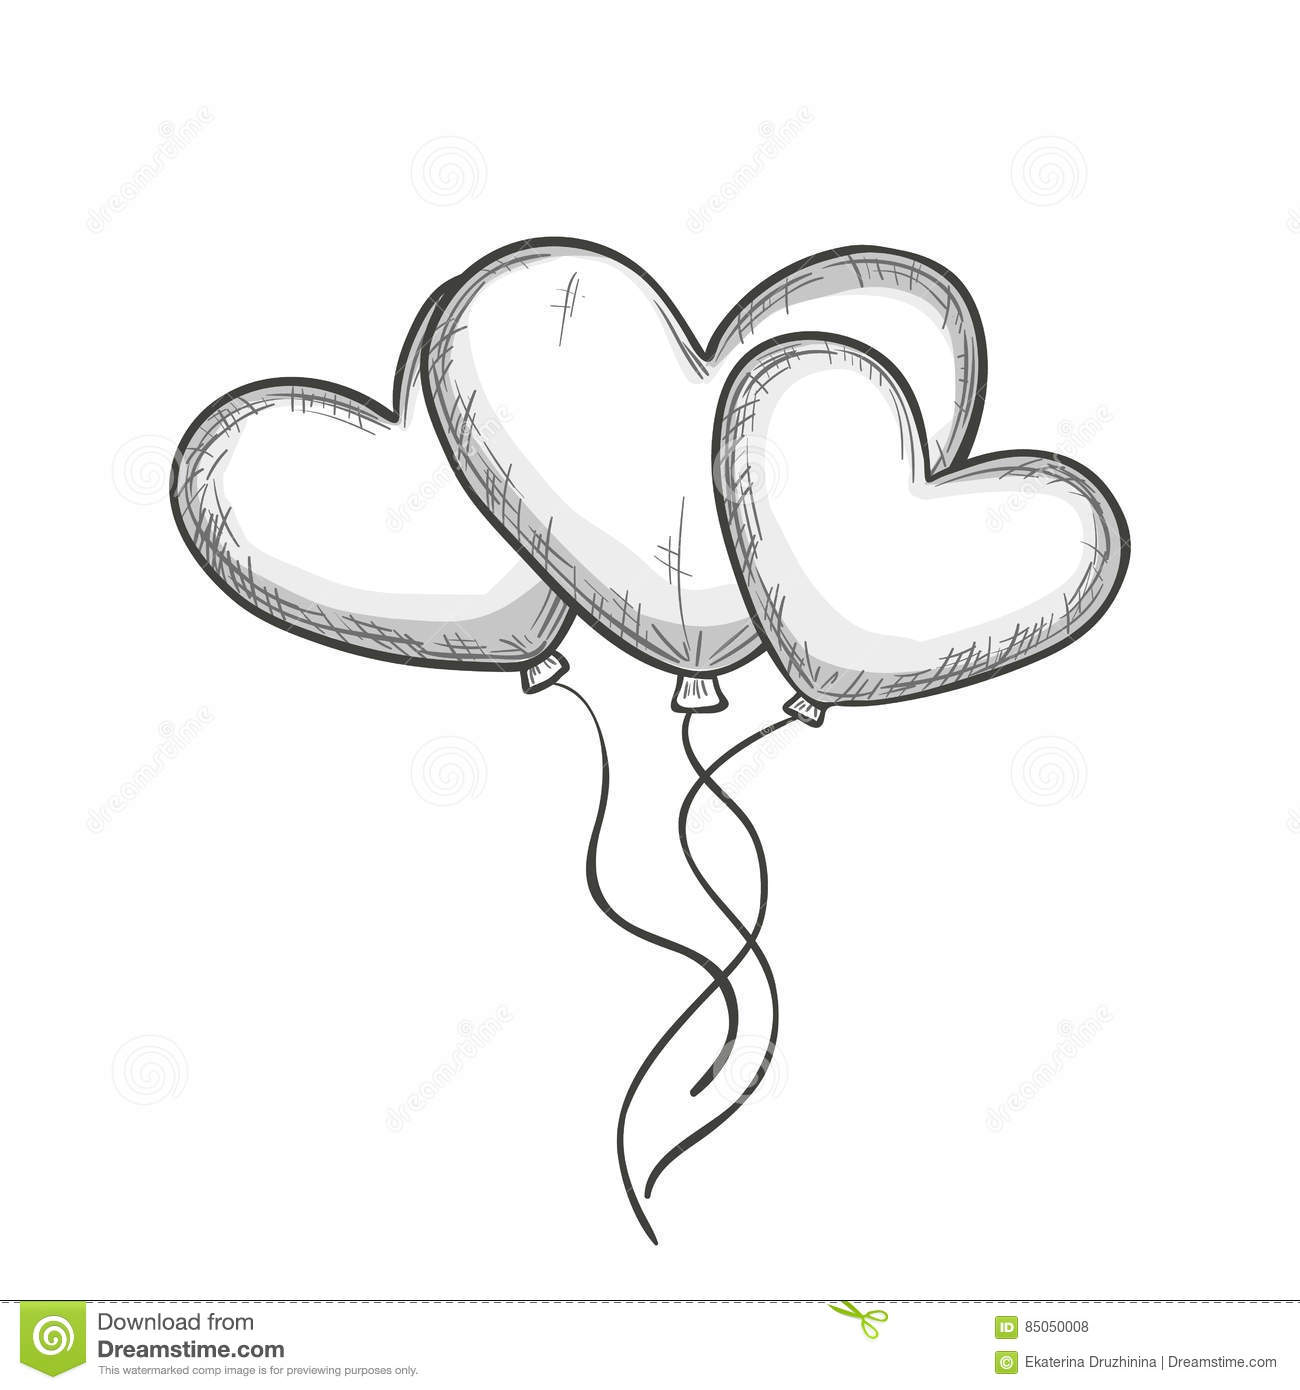 Sketch Of Heart Shaped Balloons Stock Vector - Image 85050008